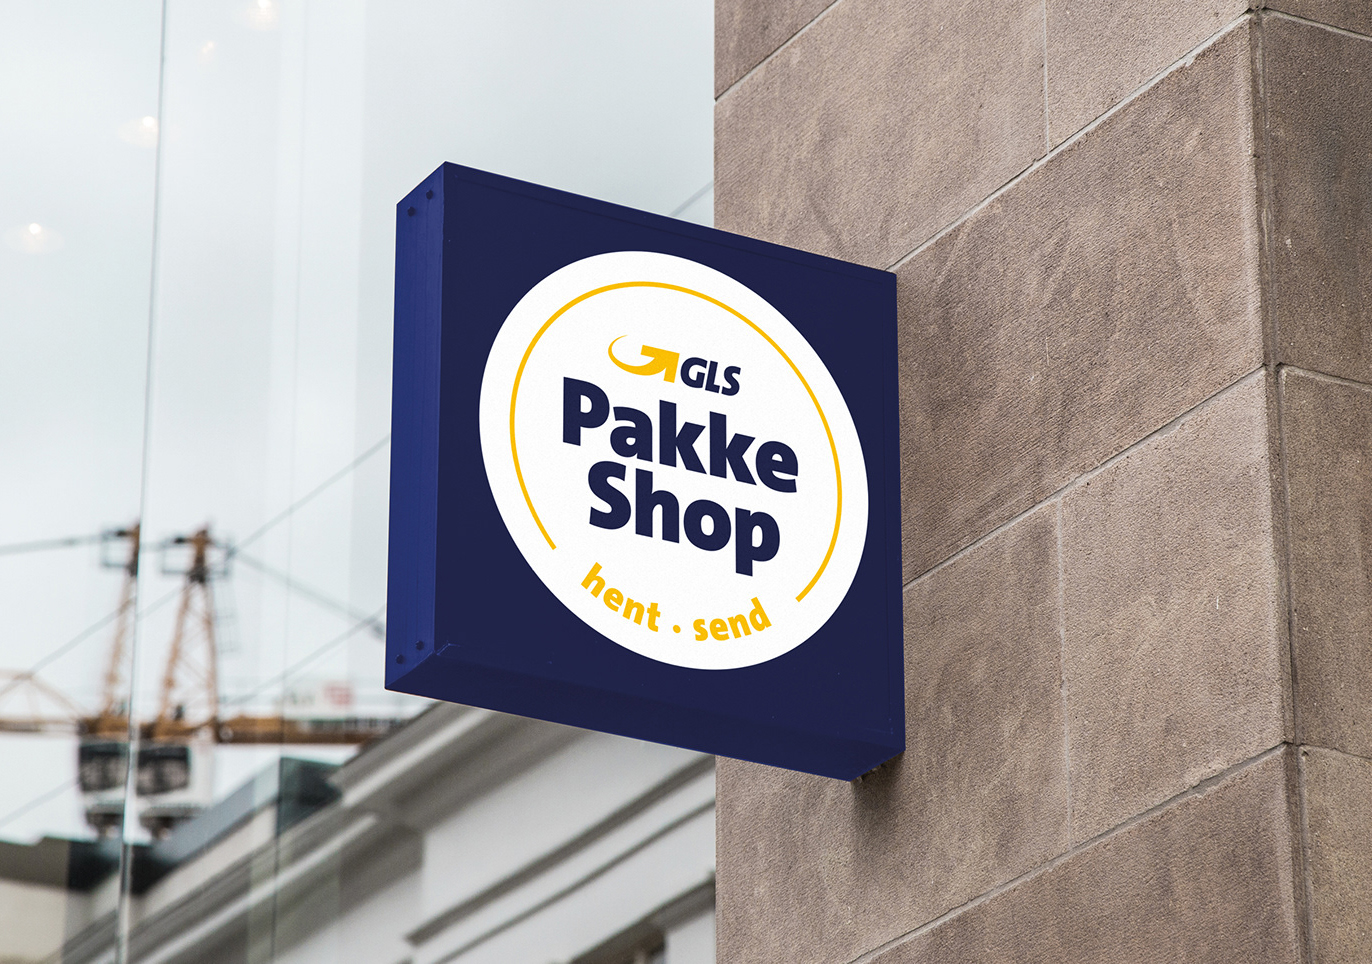 GLS Pakkeshop - logo outdoor